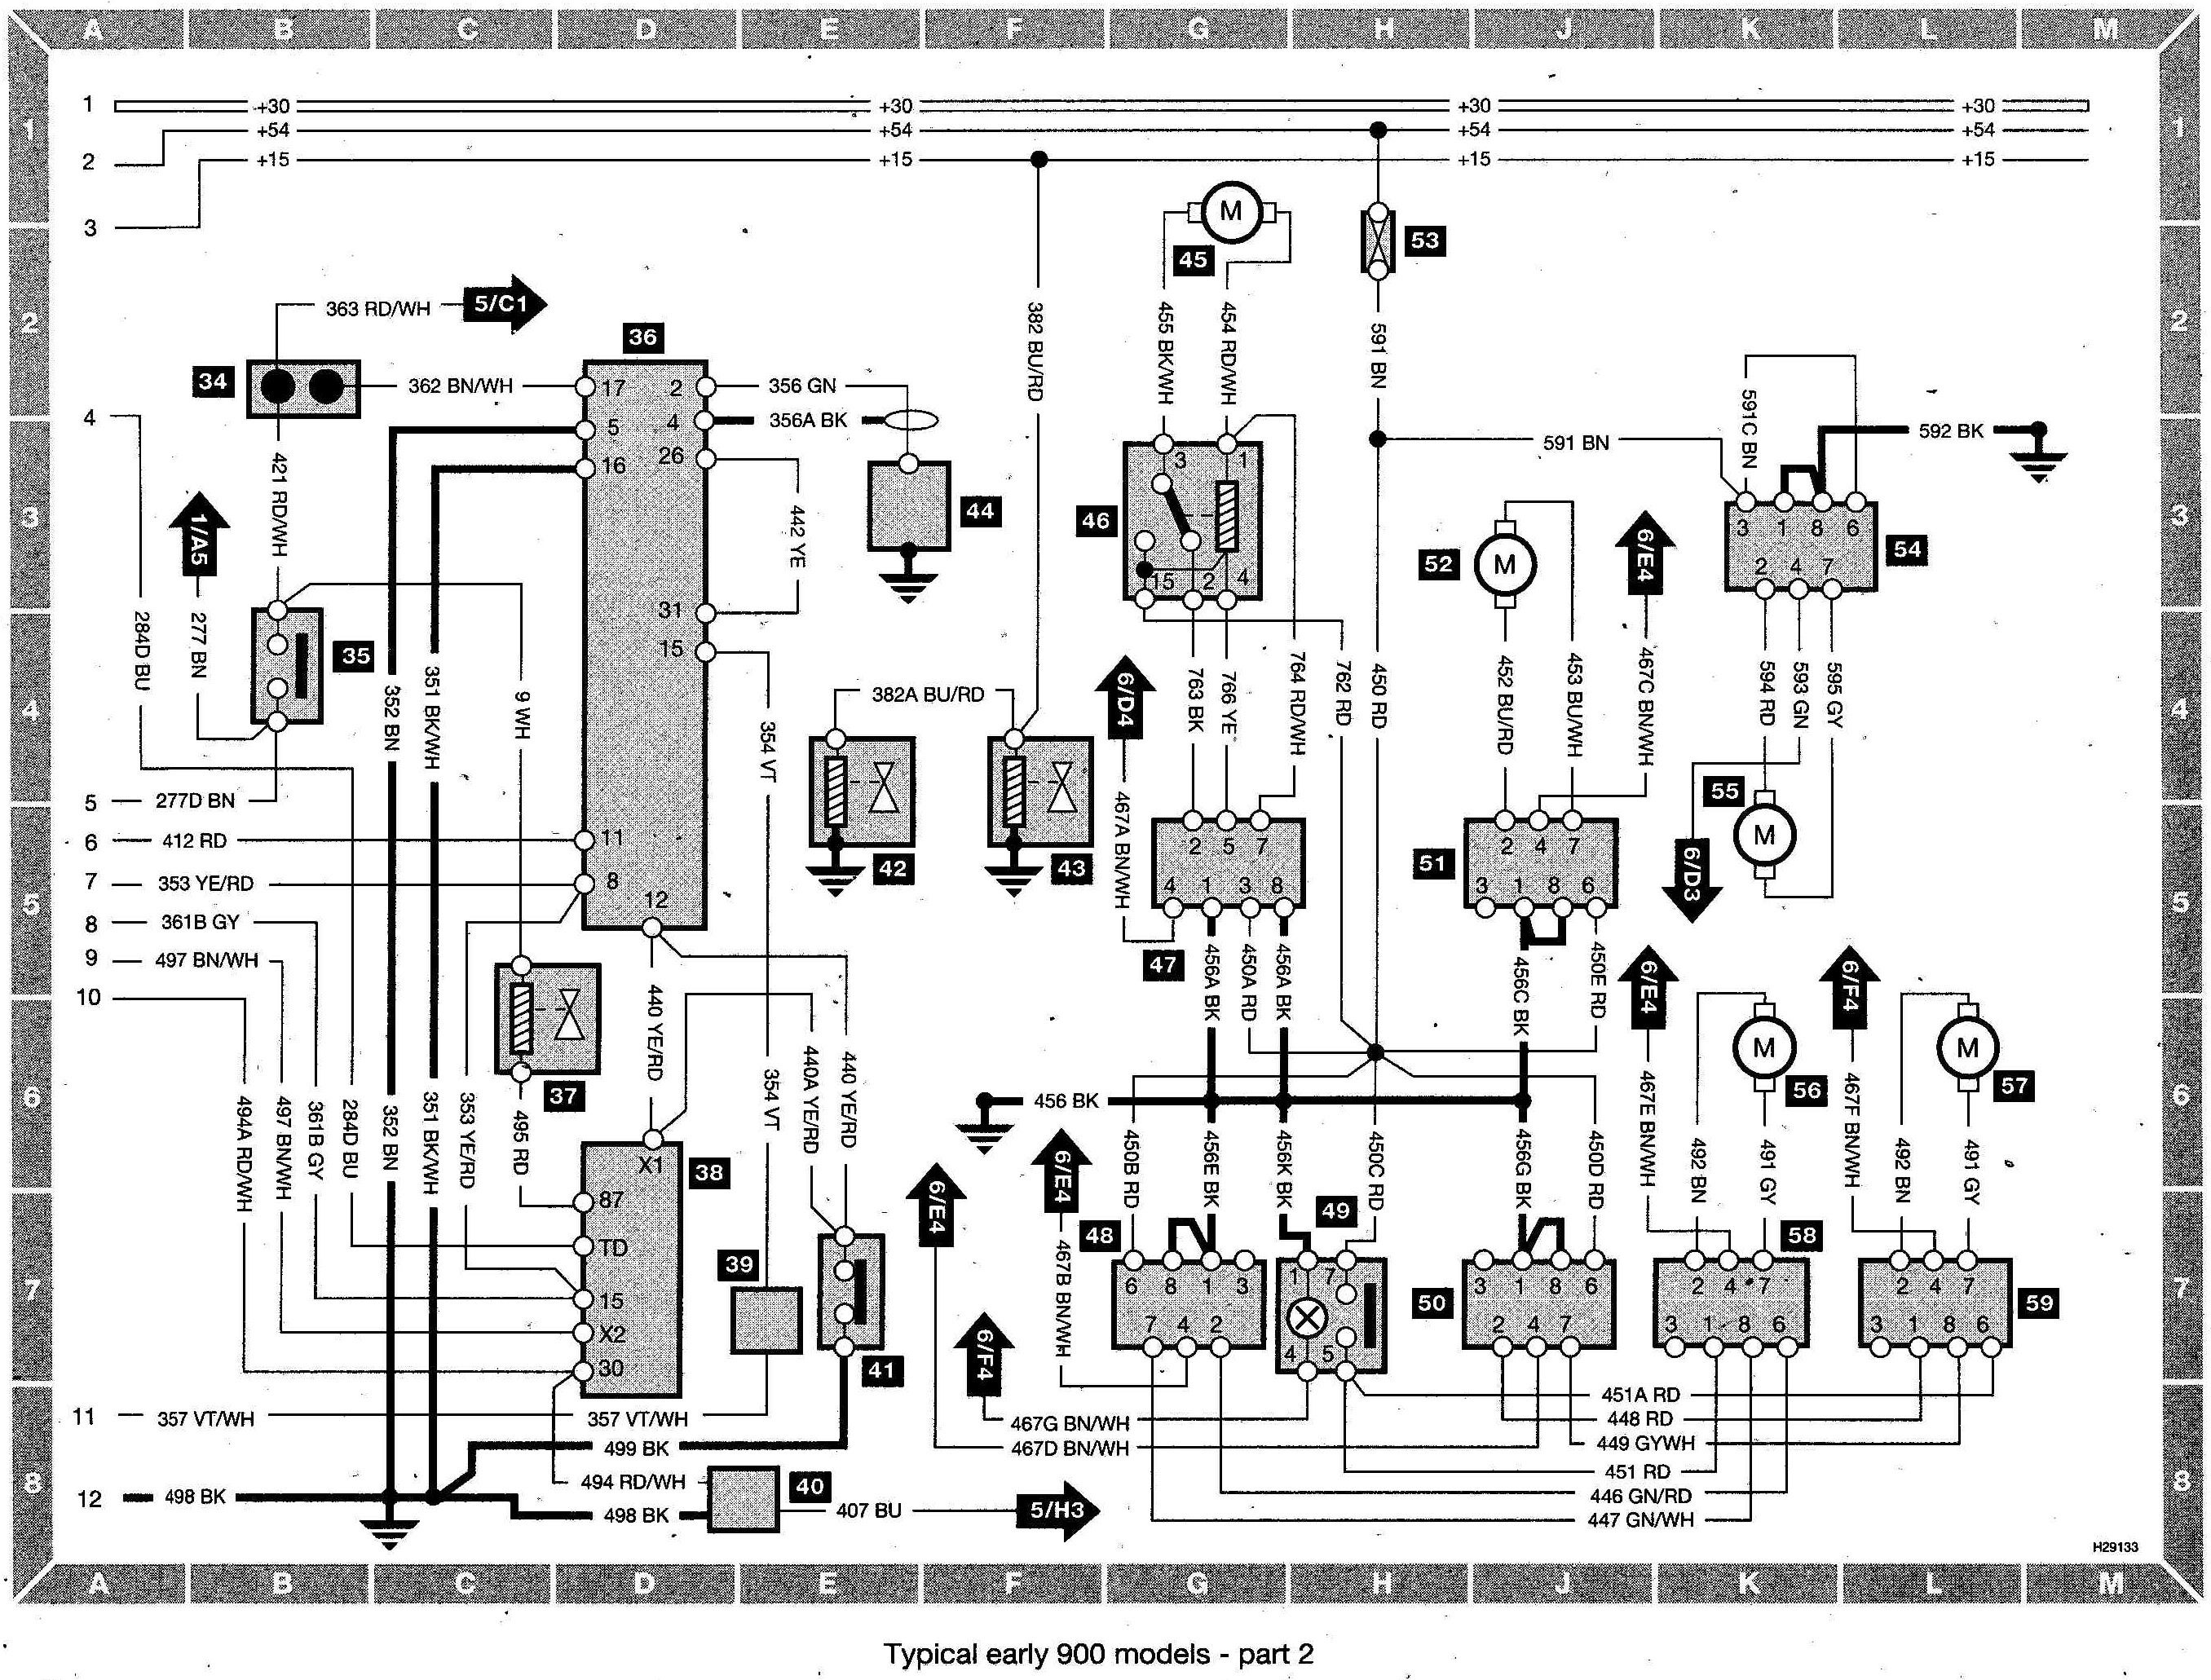 Wiring Diagram 1999 Saab 9 3 Speakers Auto Electrical Taylor Dunn Related With